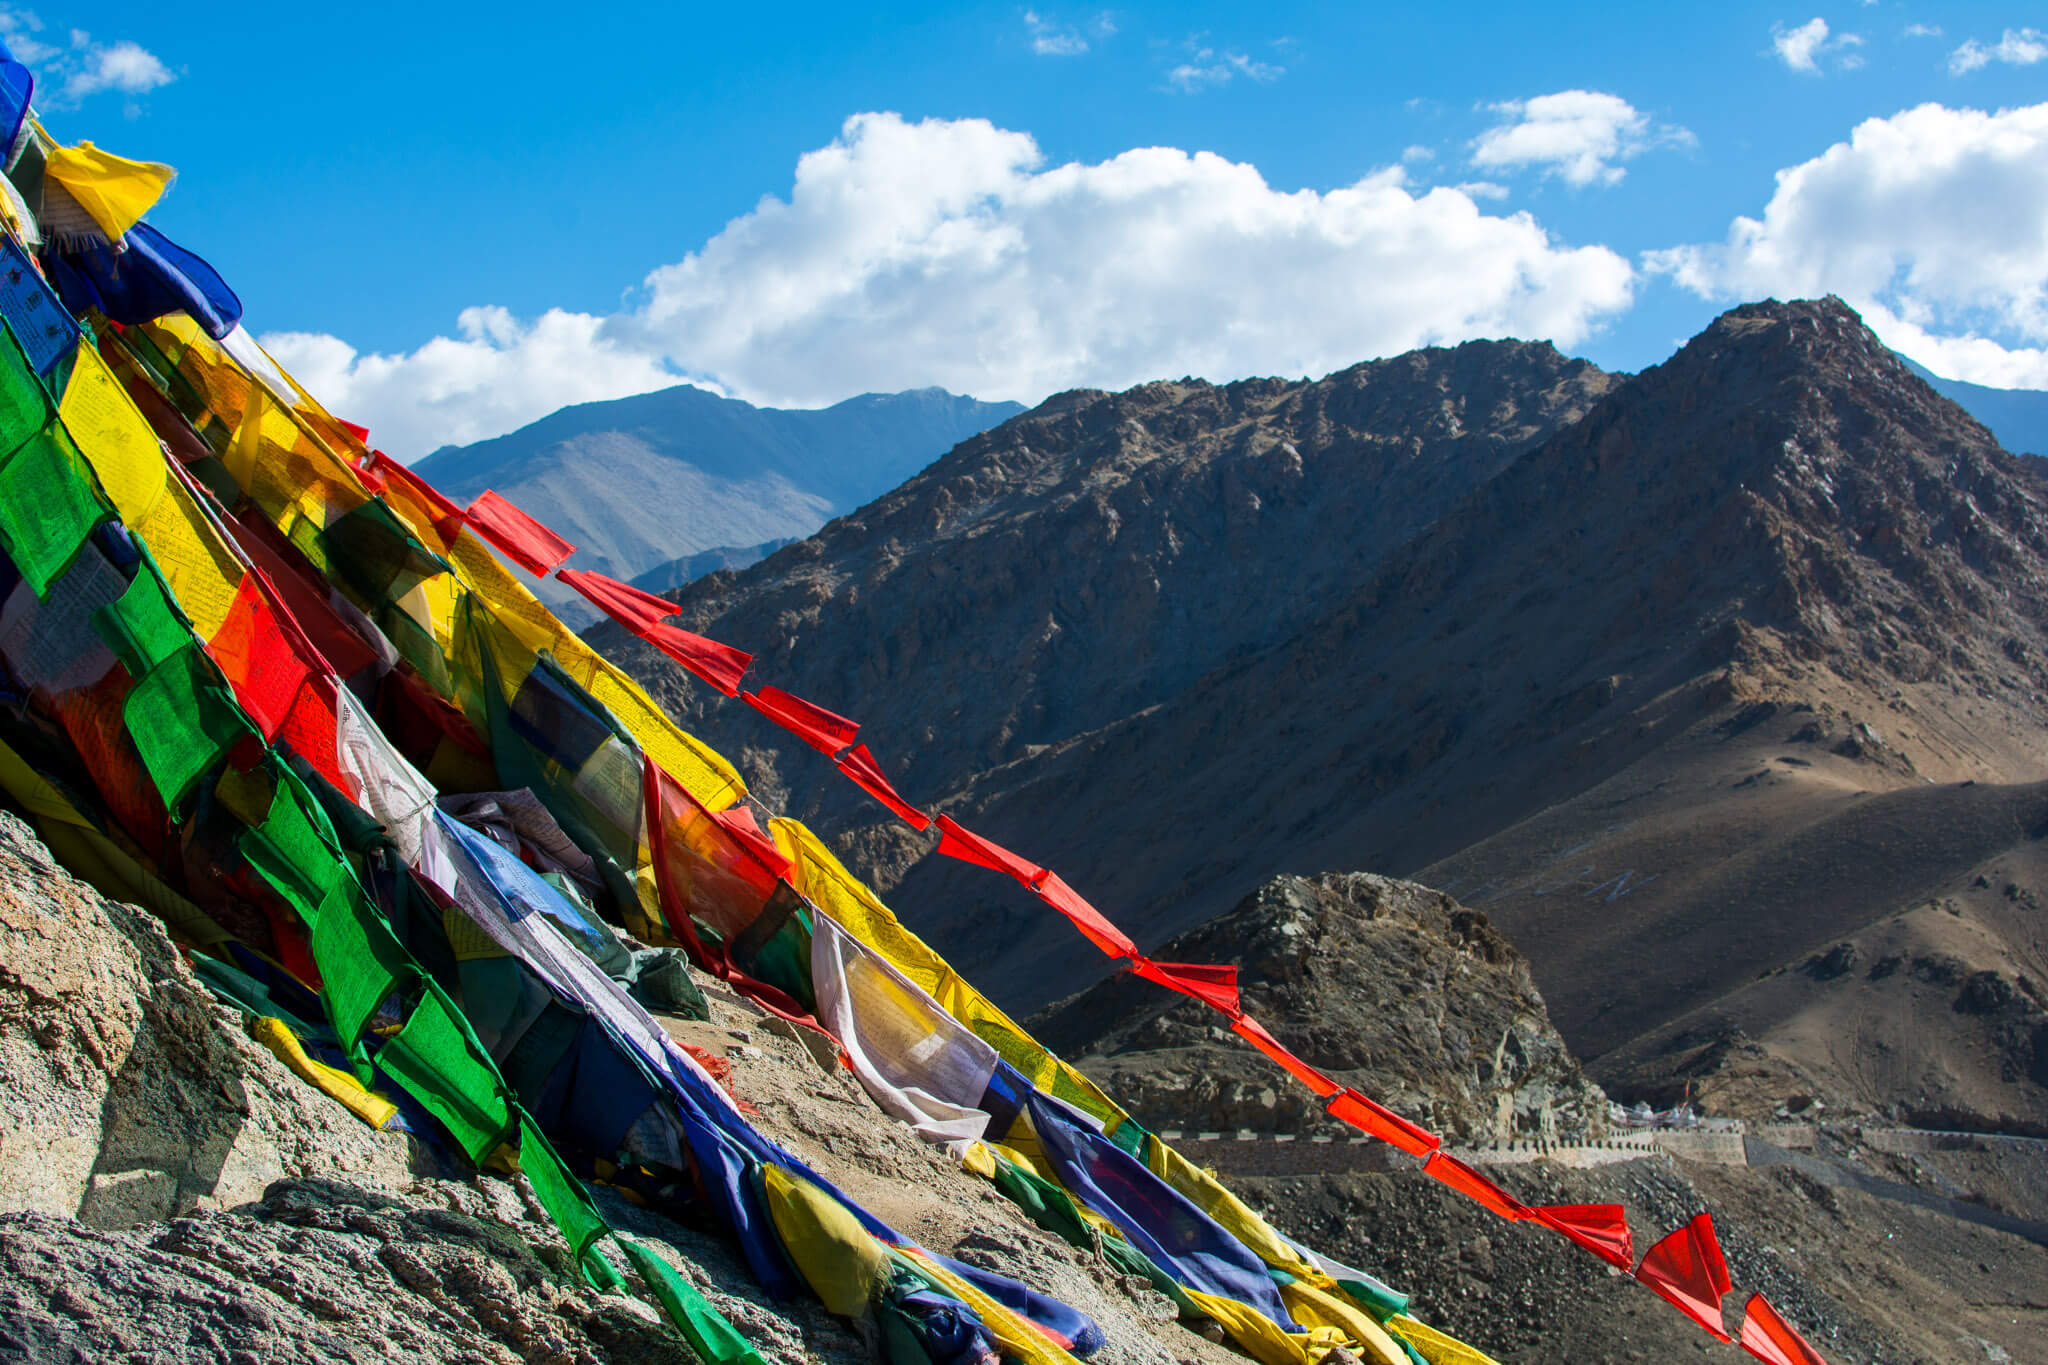 Tibetean prayer flags in Leh, Ladakh